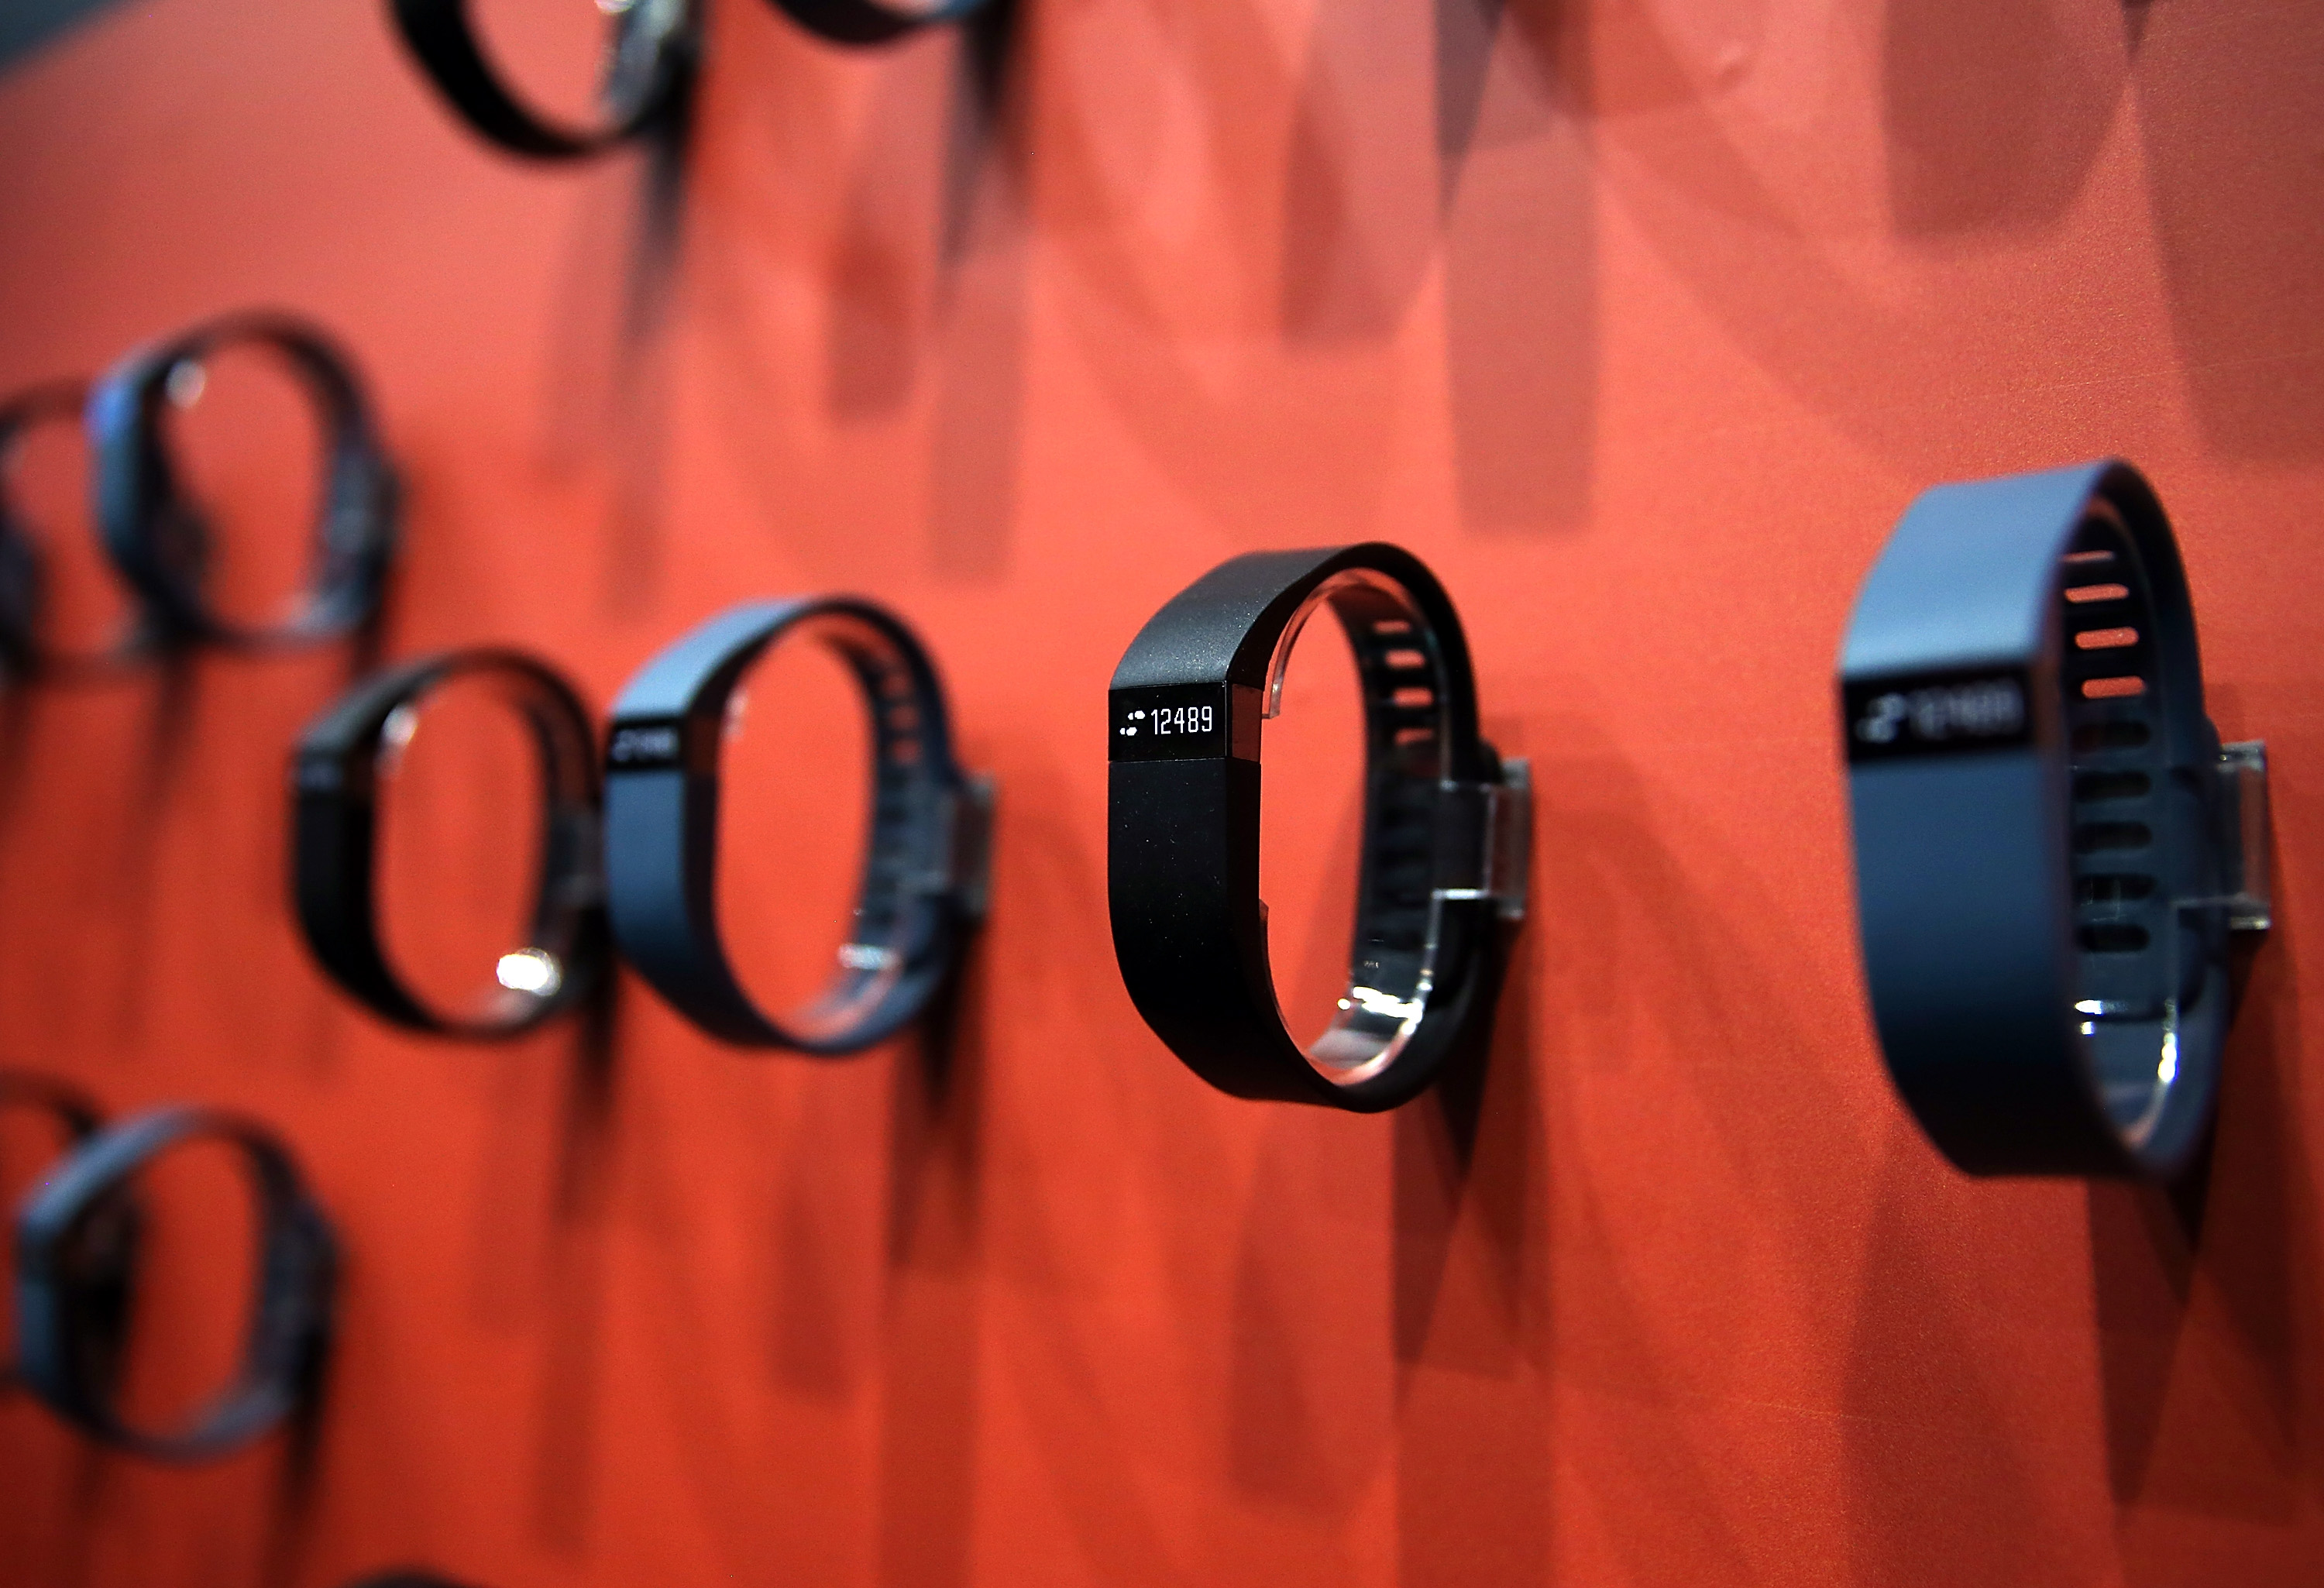 Fitbit's Digifit already takes users' heart rate and monitors distance and calories, which makes Apple fans wonder what the newest Healthbook will do different. (Getty)